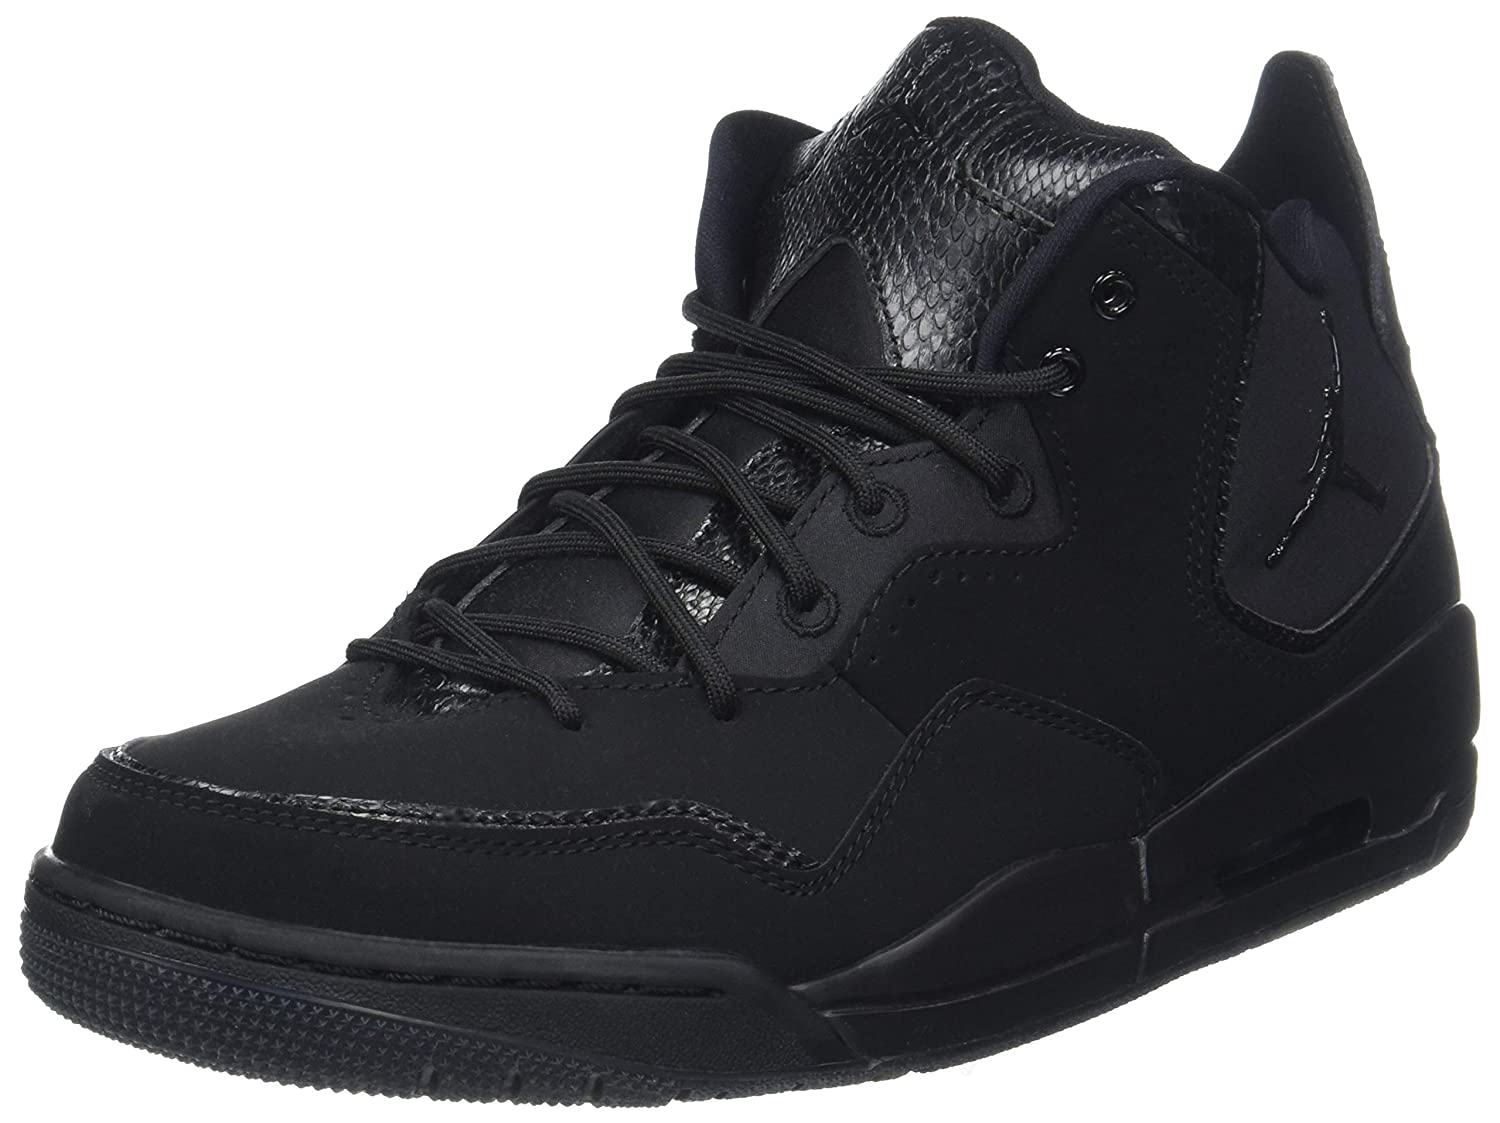 61db6f25a64 Amazon.com | Jordan Nike Men's Courtside 23 Basketball Shoe | Basketball